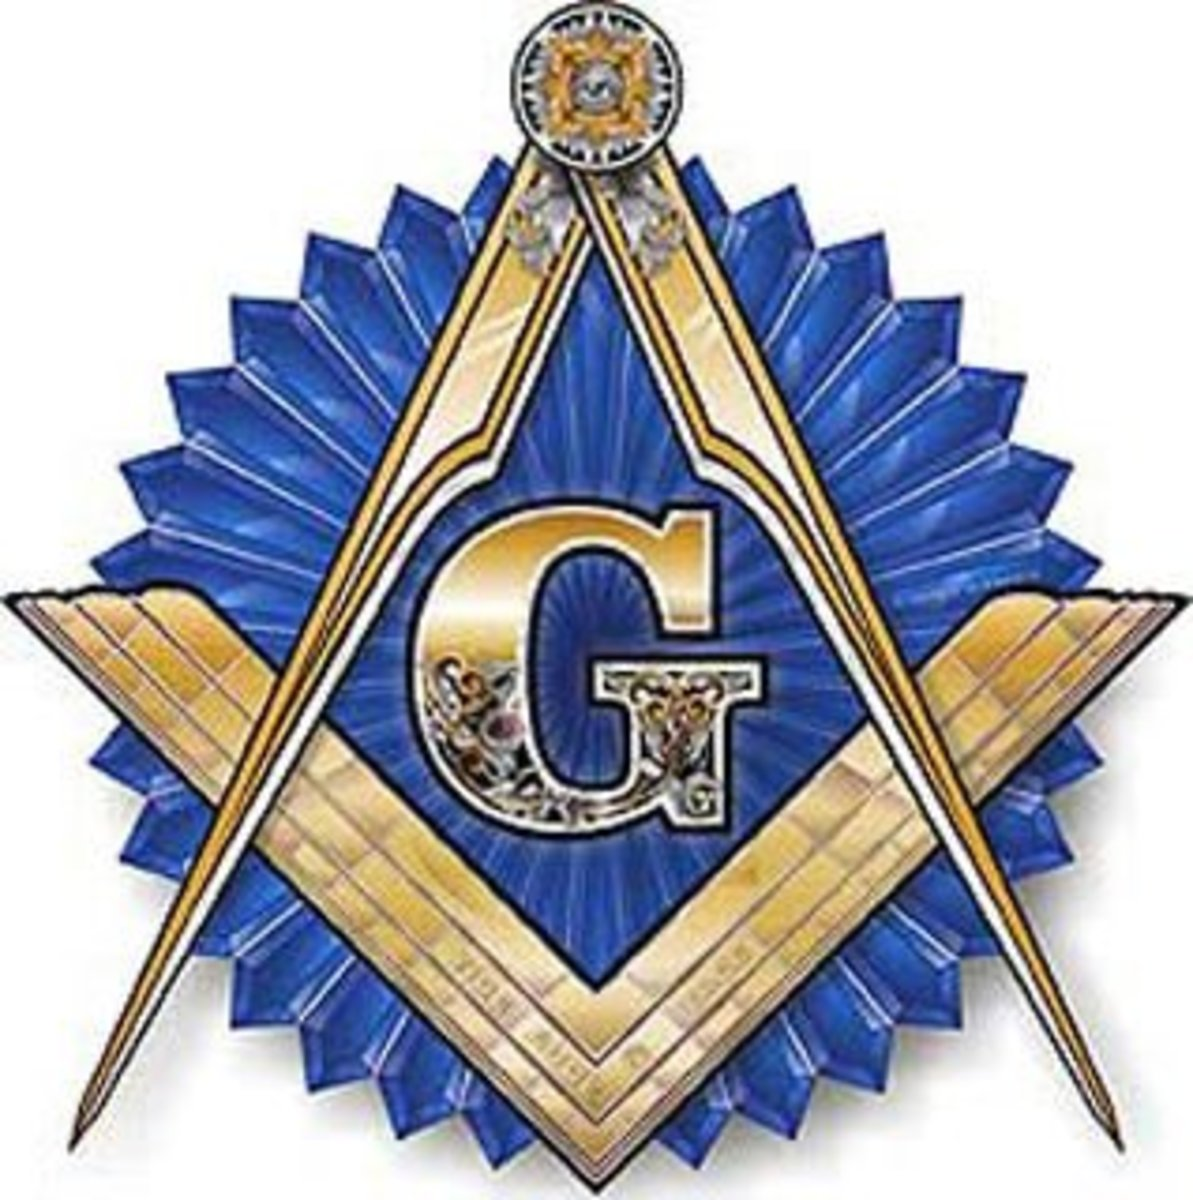 Masonic Misconception